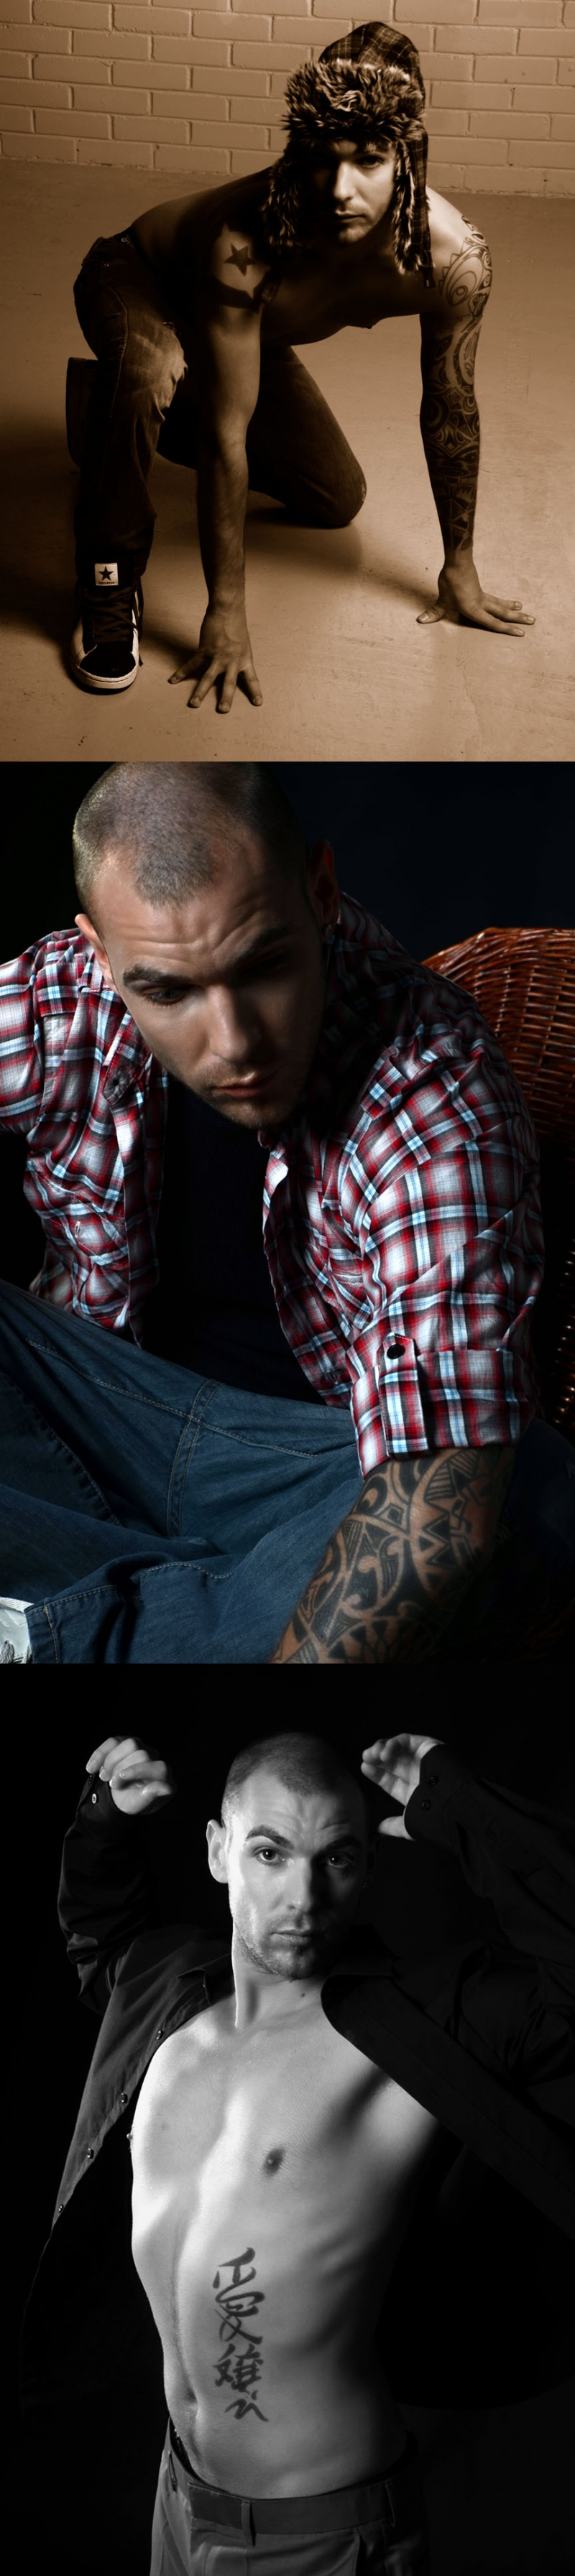 Male model photo shoot of Ryan Donovan by Nige Rorbach in edge photographic